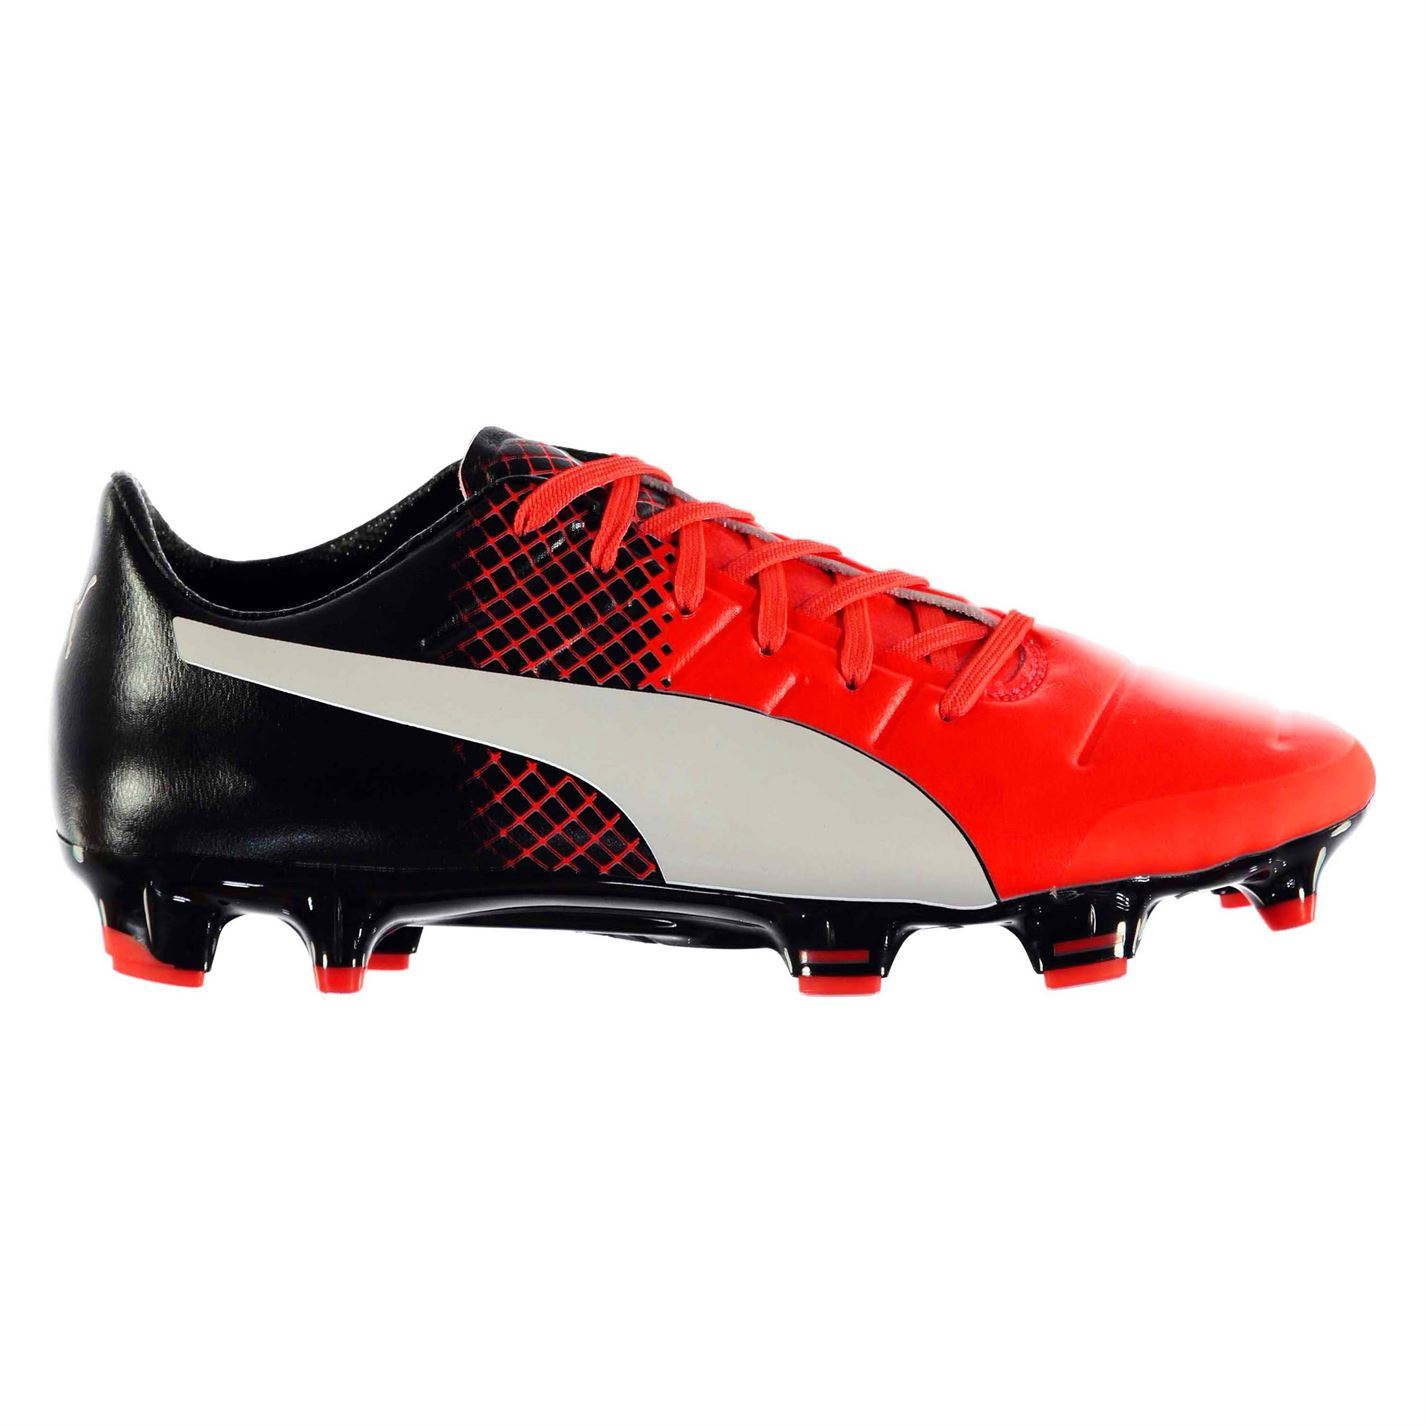 ... Puma Evo Power 2.3 FG Firm Ground Football Boots Mens Rd Blk Soccer  Cleats Shoes ... 649d38aeb82c